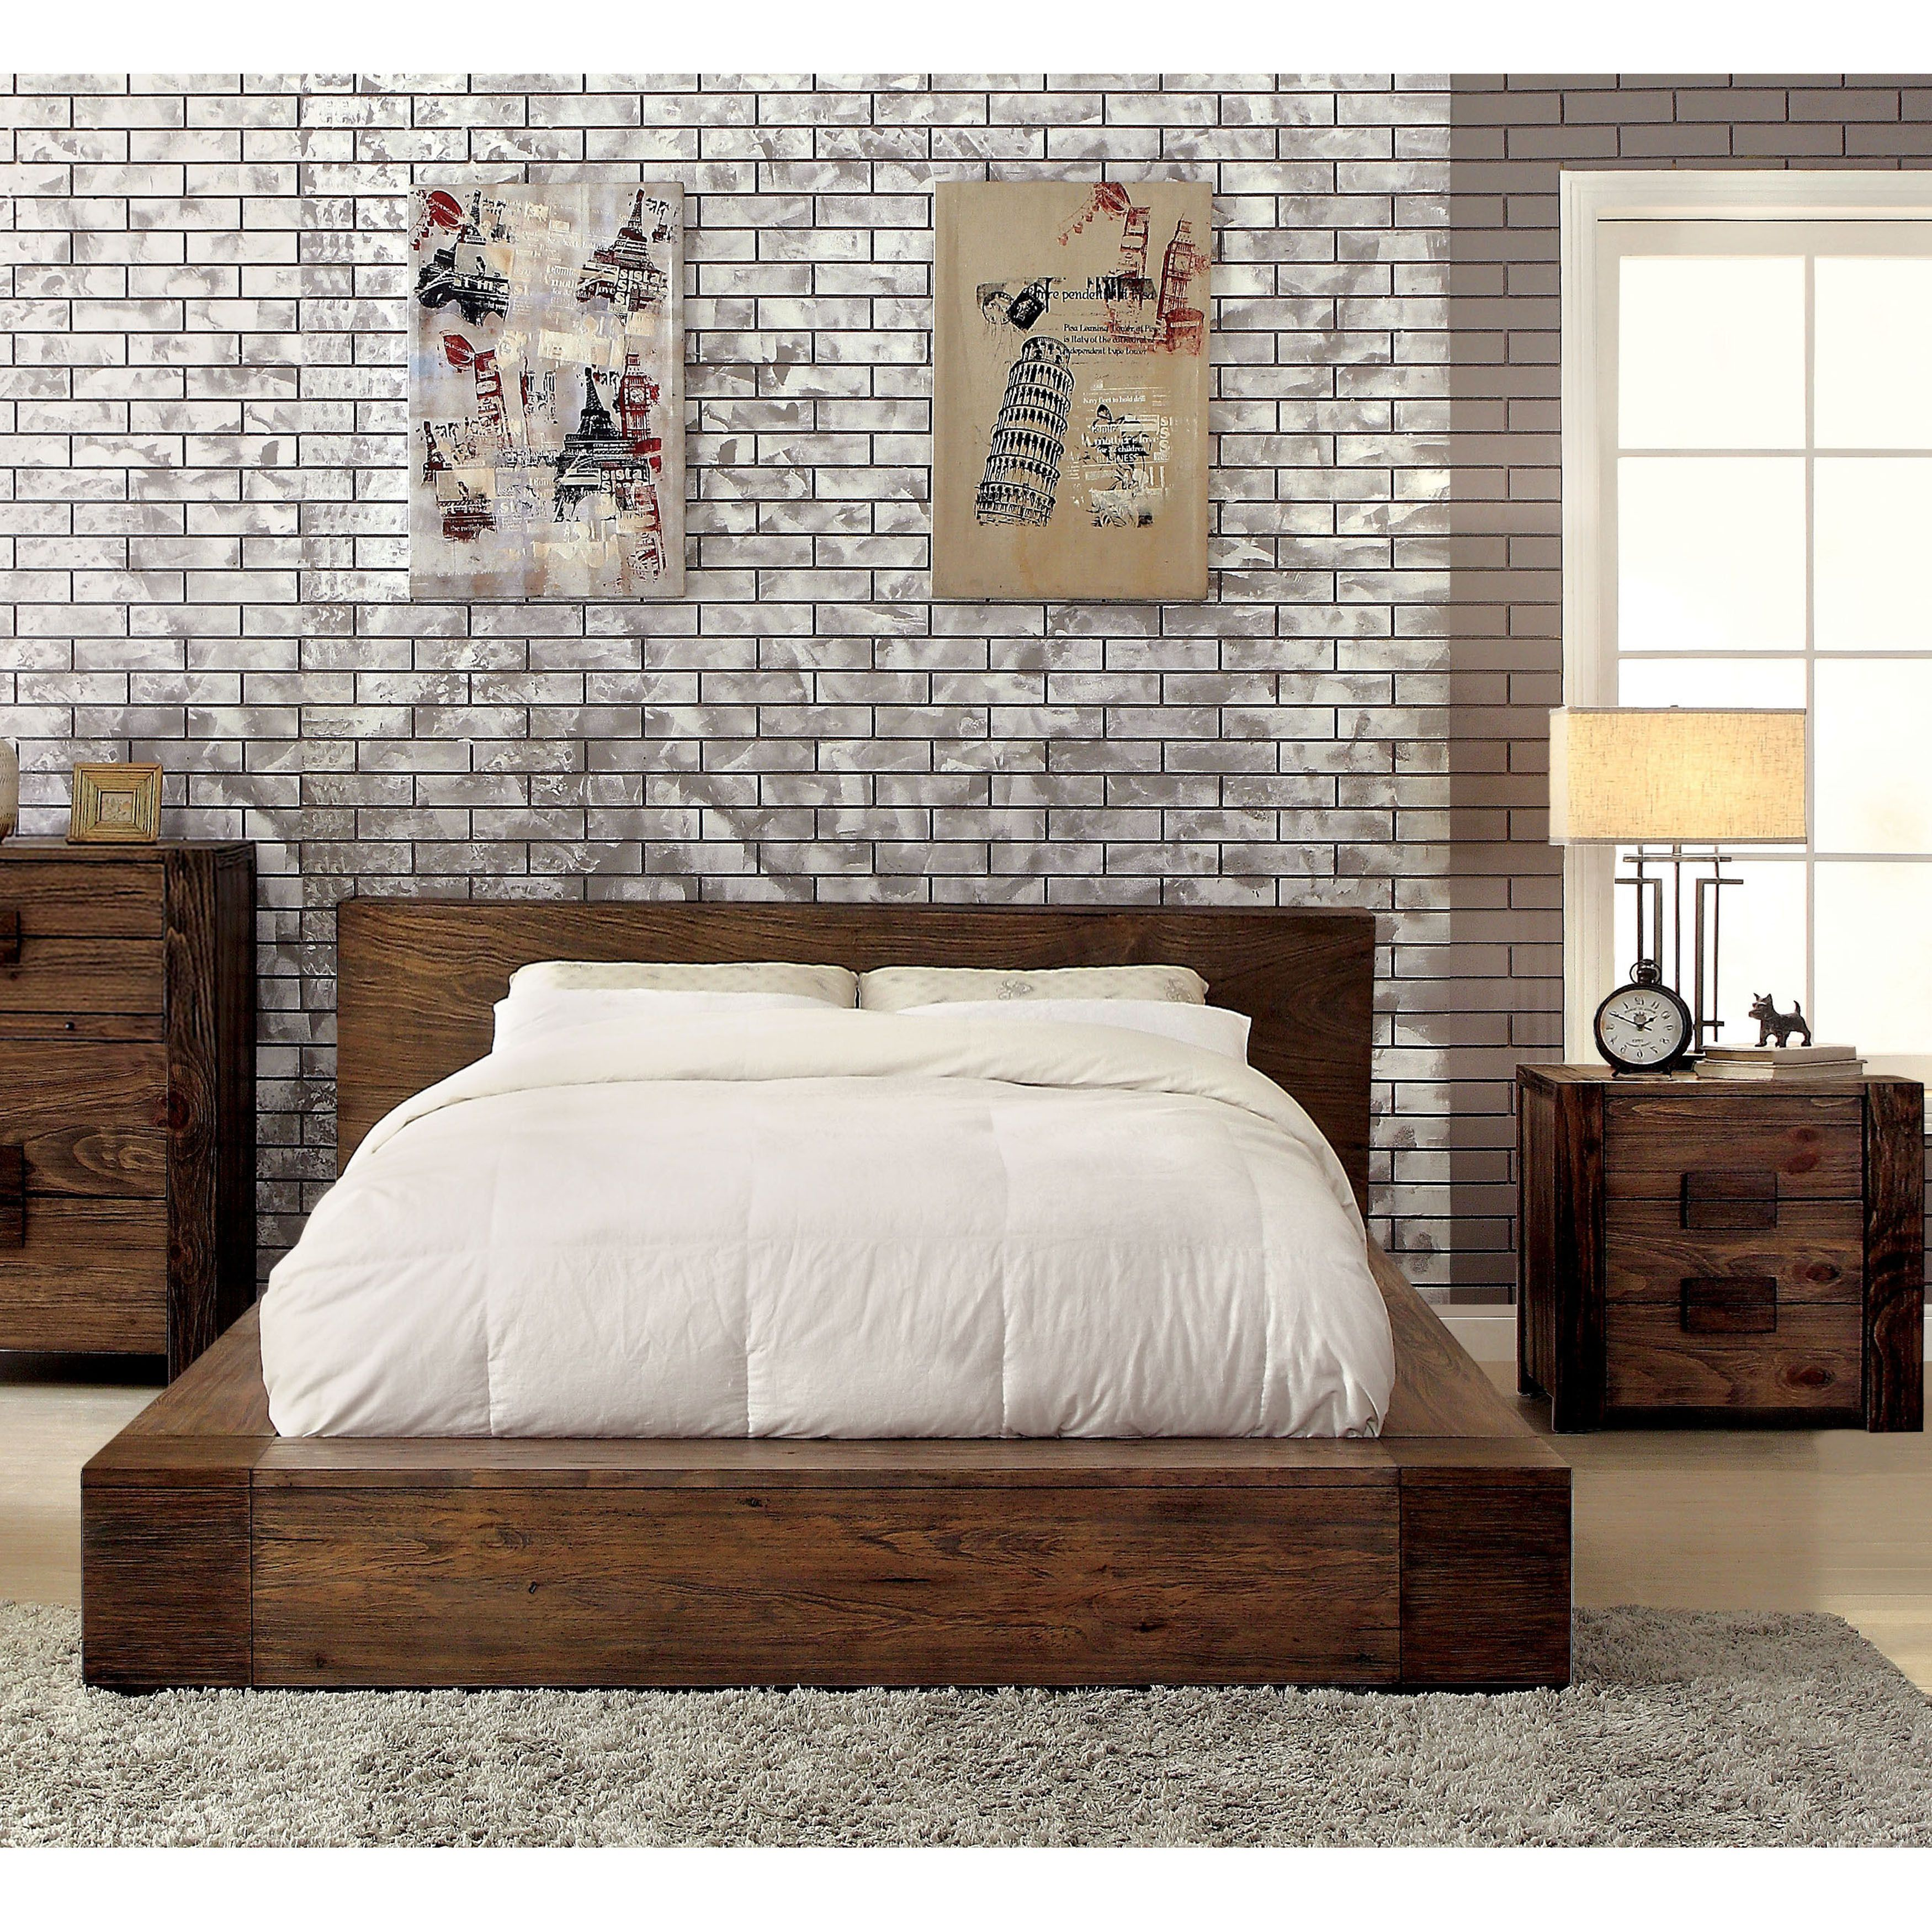 Furniture Of America Shaylen I Rustic 2 Piece Natural Tone Low Profile Bed And Nightstand Set Furniture Bed Design Upholstered Platform Bed